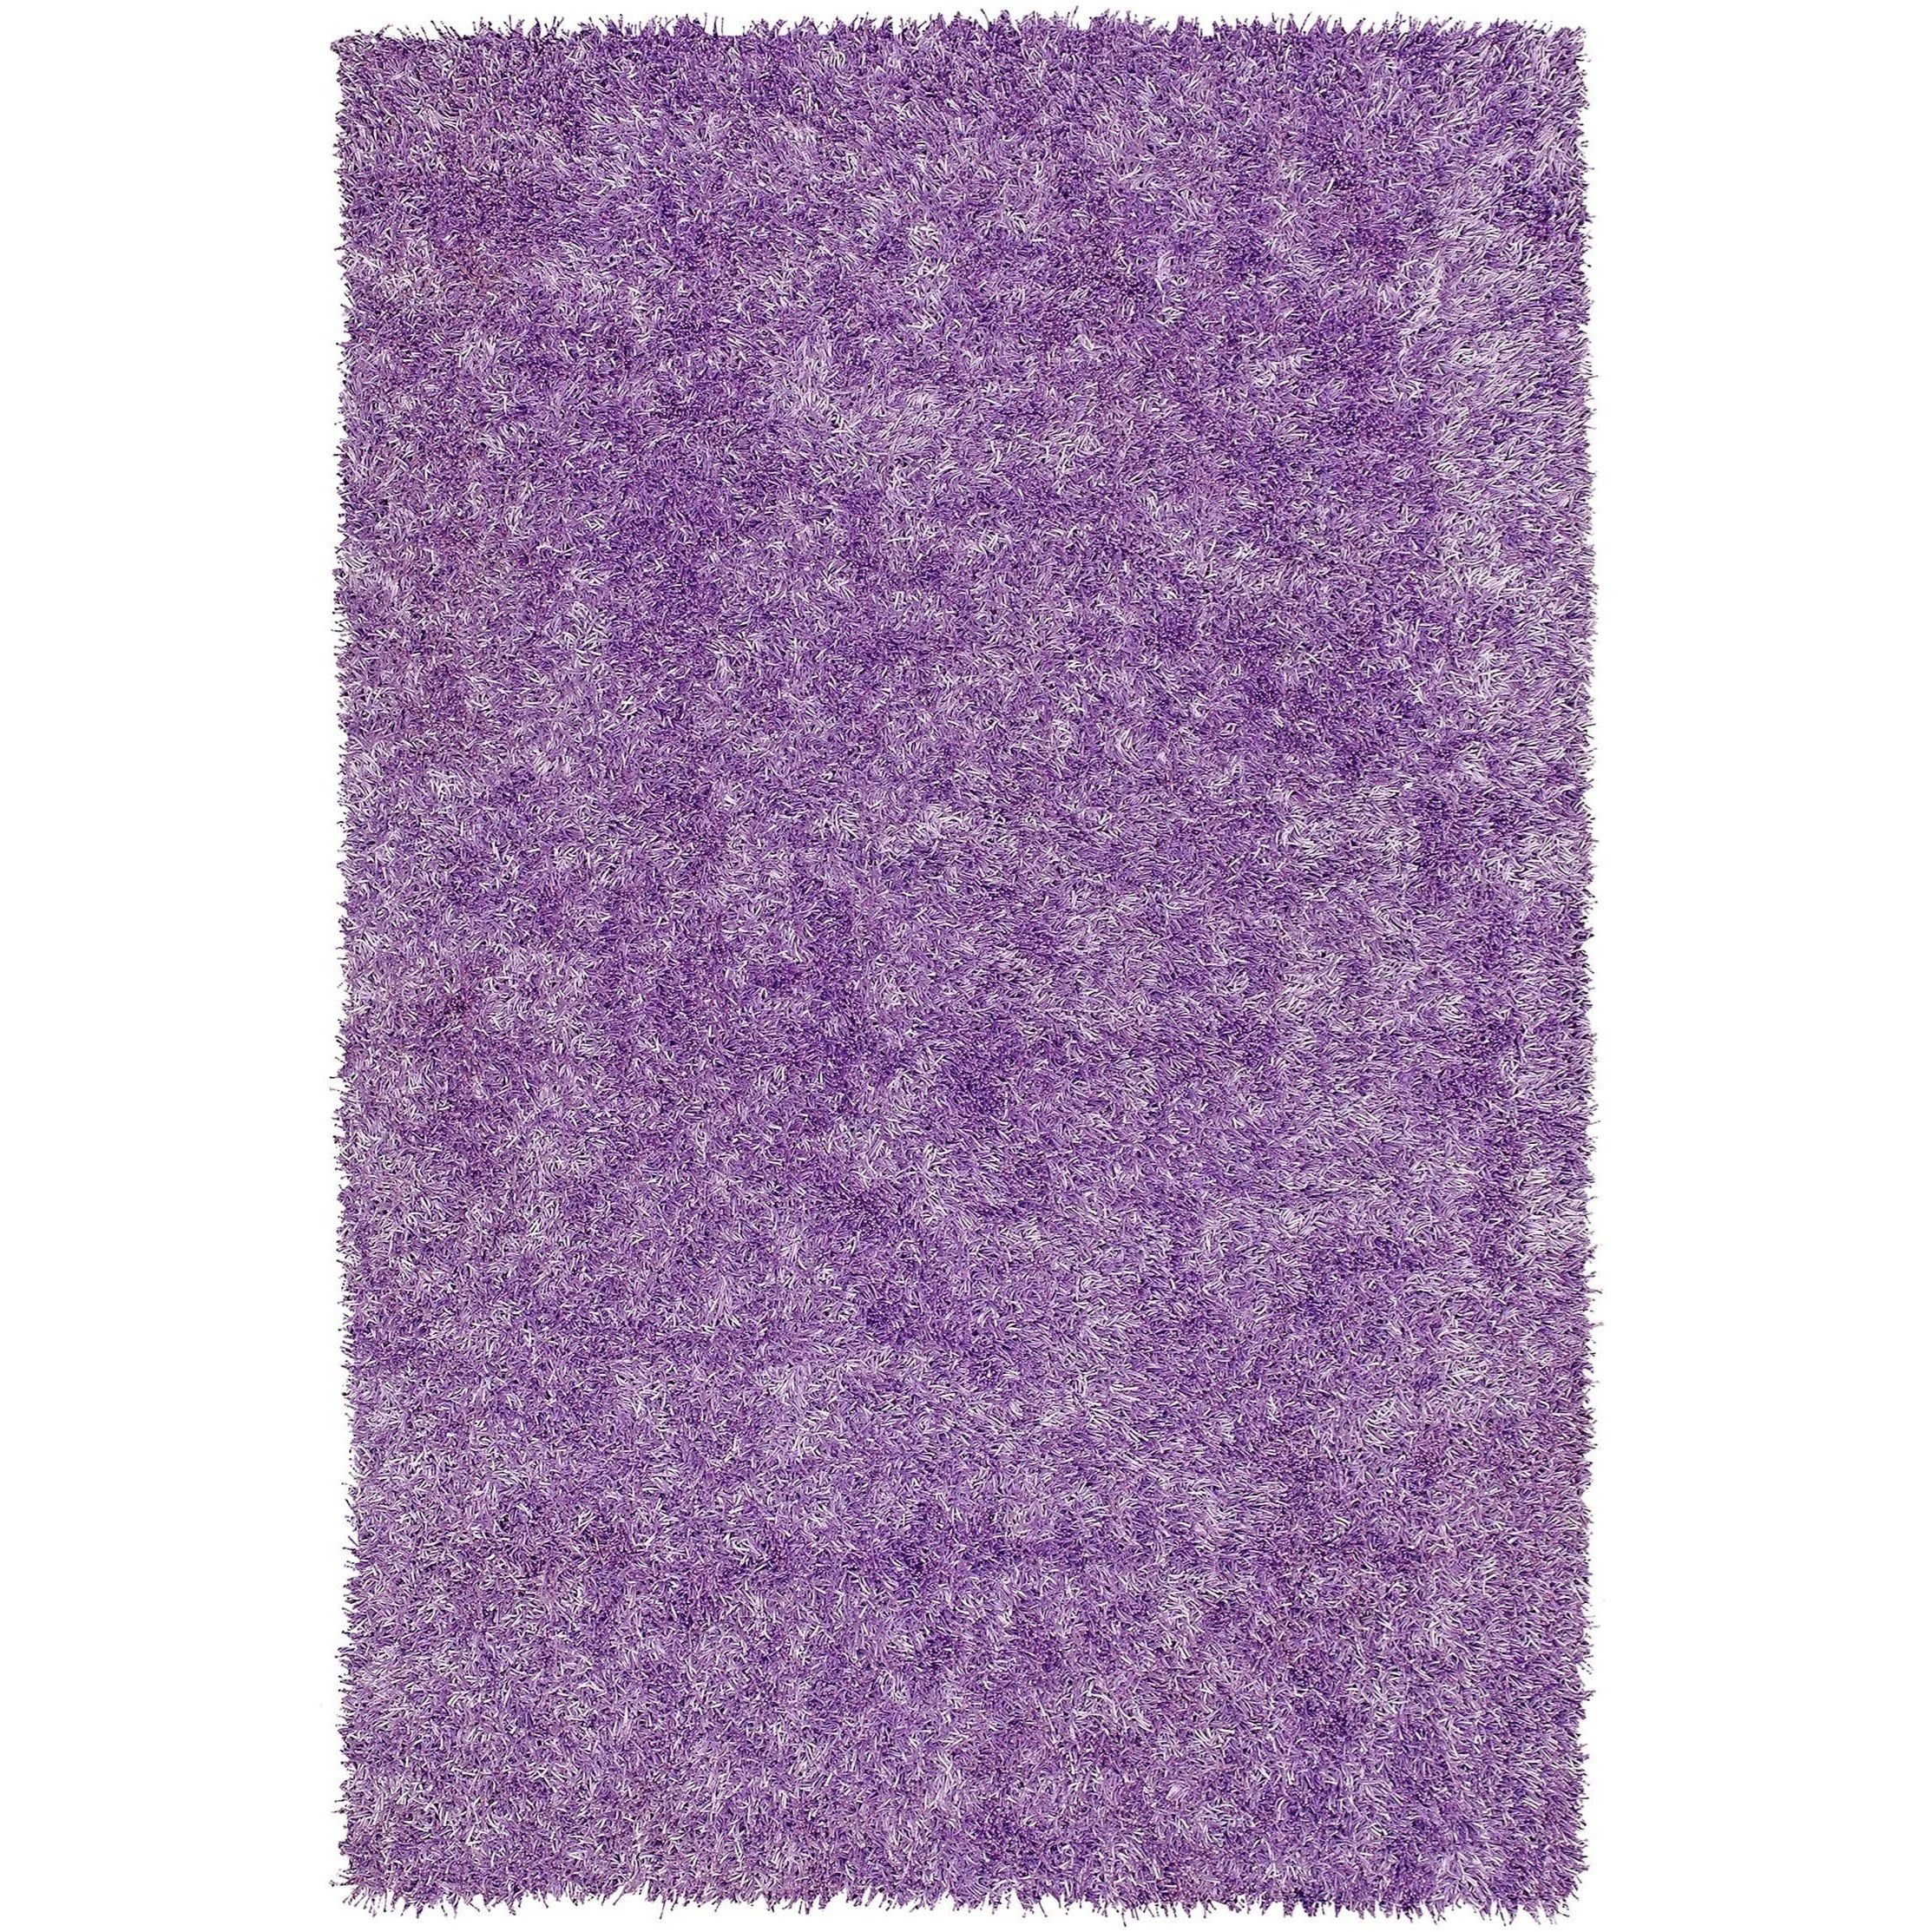 Dalyn Bright Lights Lilac 8'X10' Rug - Item Number: BG69LL8X10